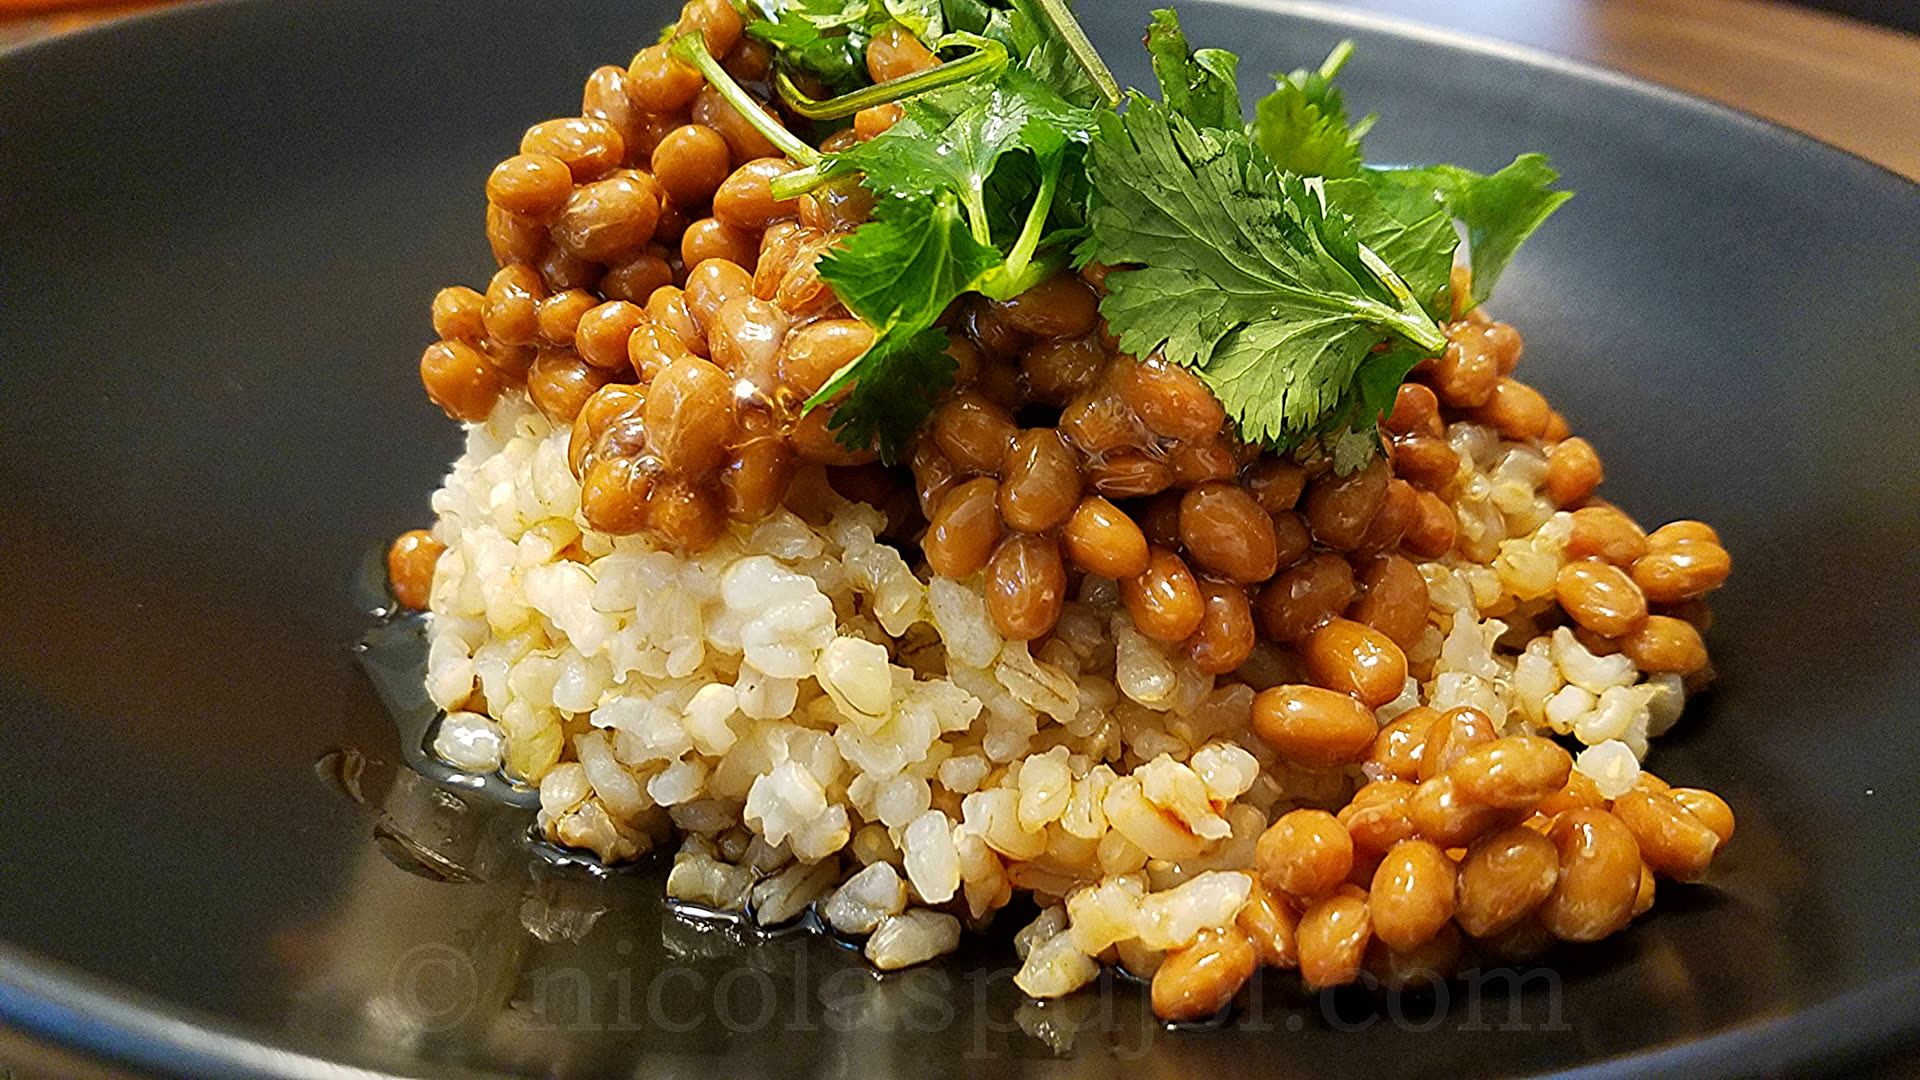 French-Japanese fusion natto with brown rice and olive oil